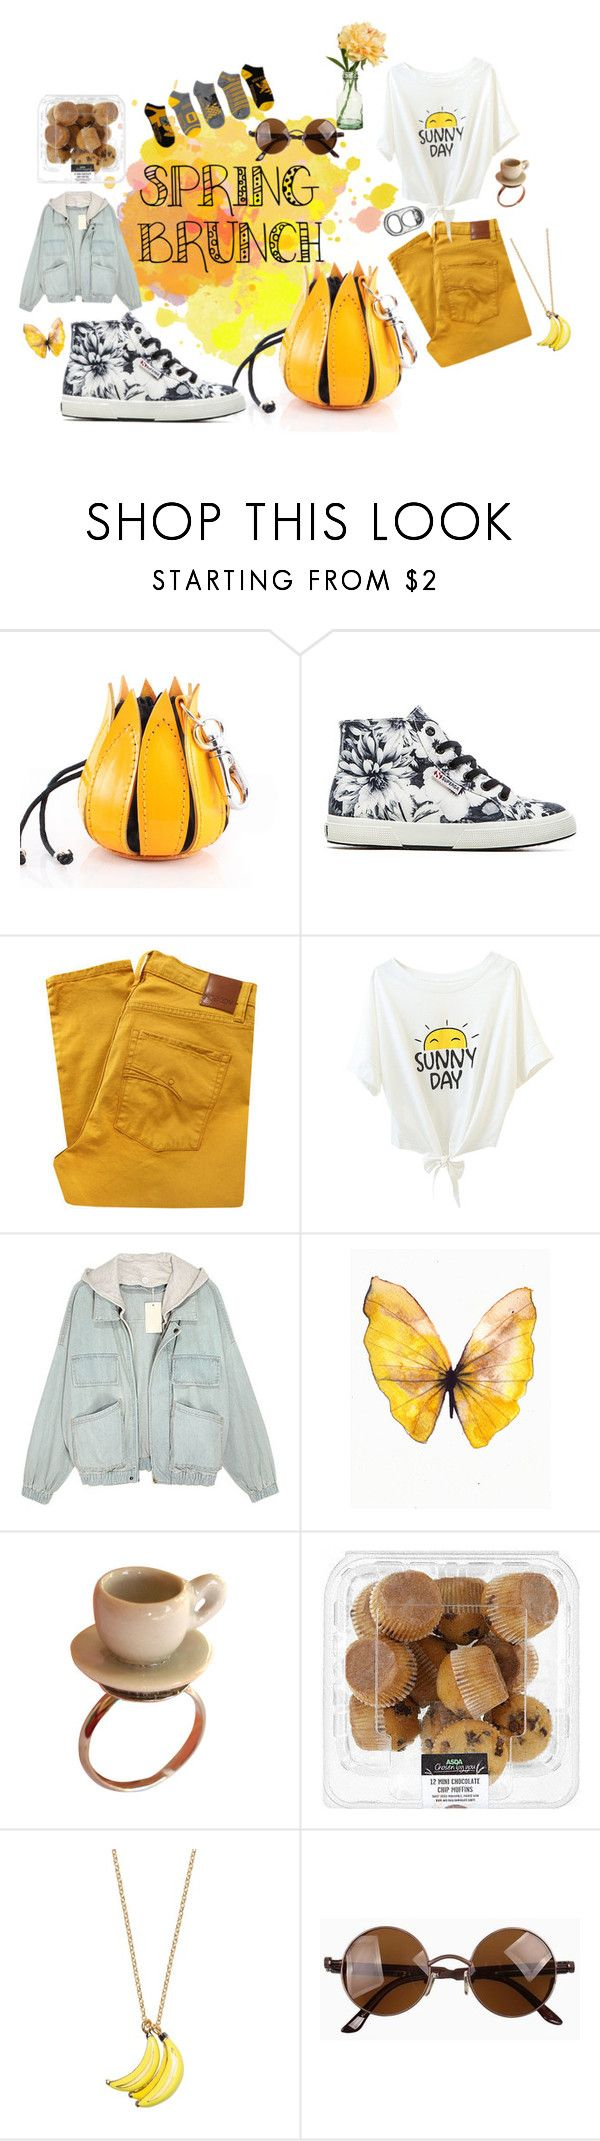 """""""Brunch"""" by pantherinae on Polyvore featuring Superga, Nobody Denim, Kate Spade, Peony, Spring, contest, brunch, contestentry and LionsLook"""